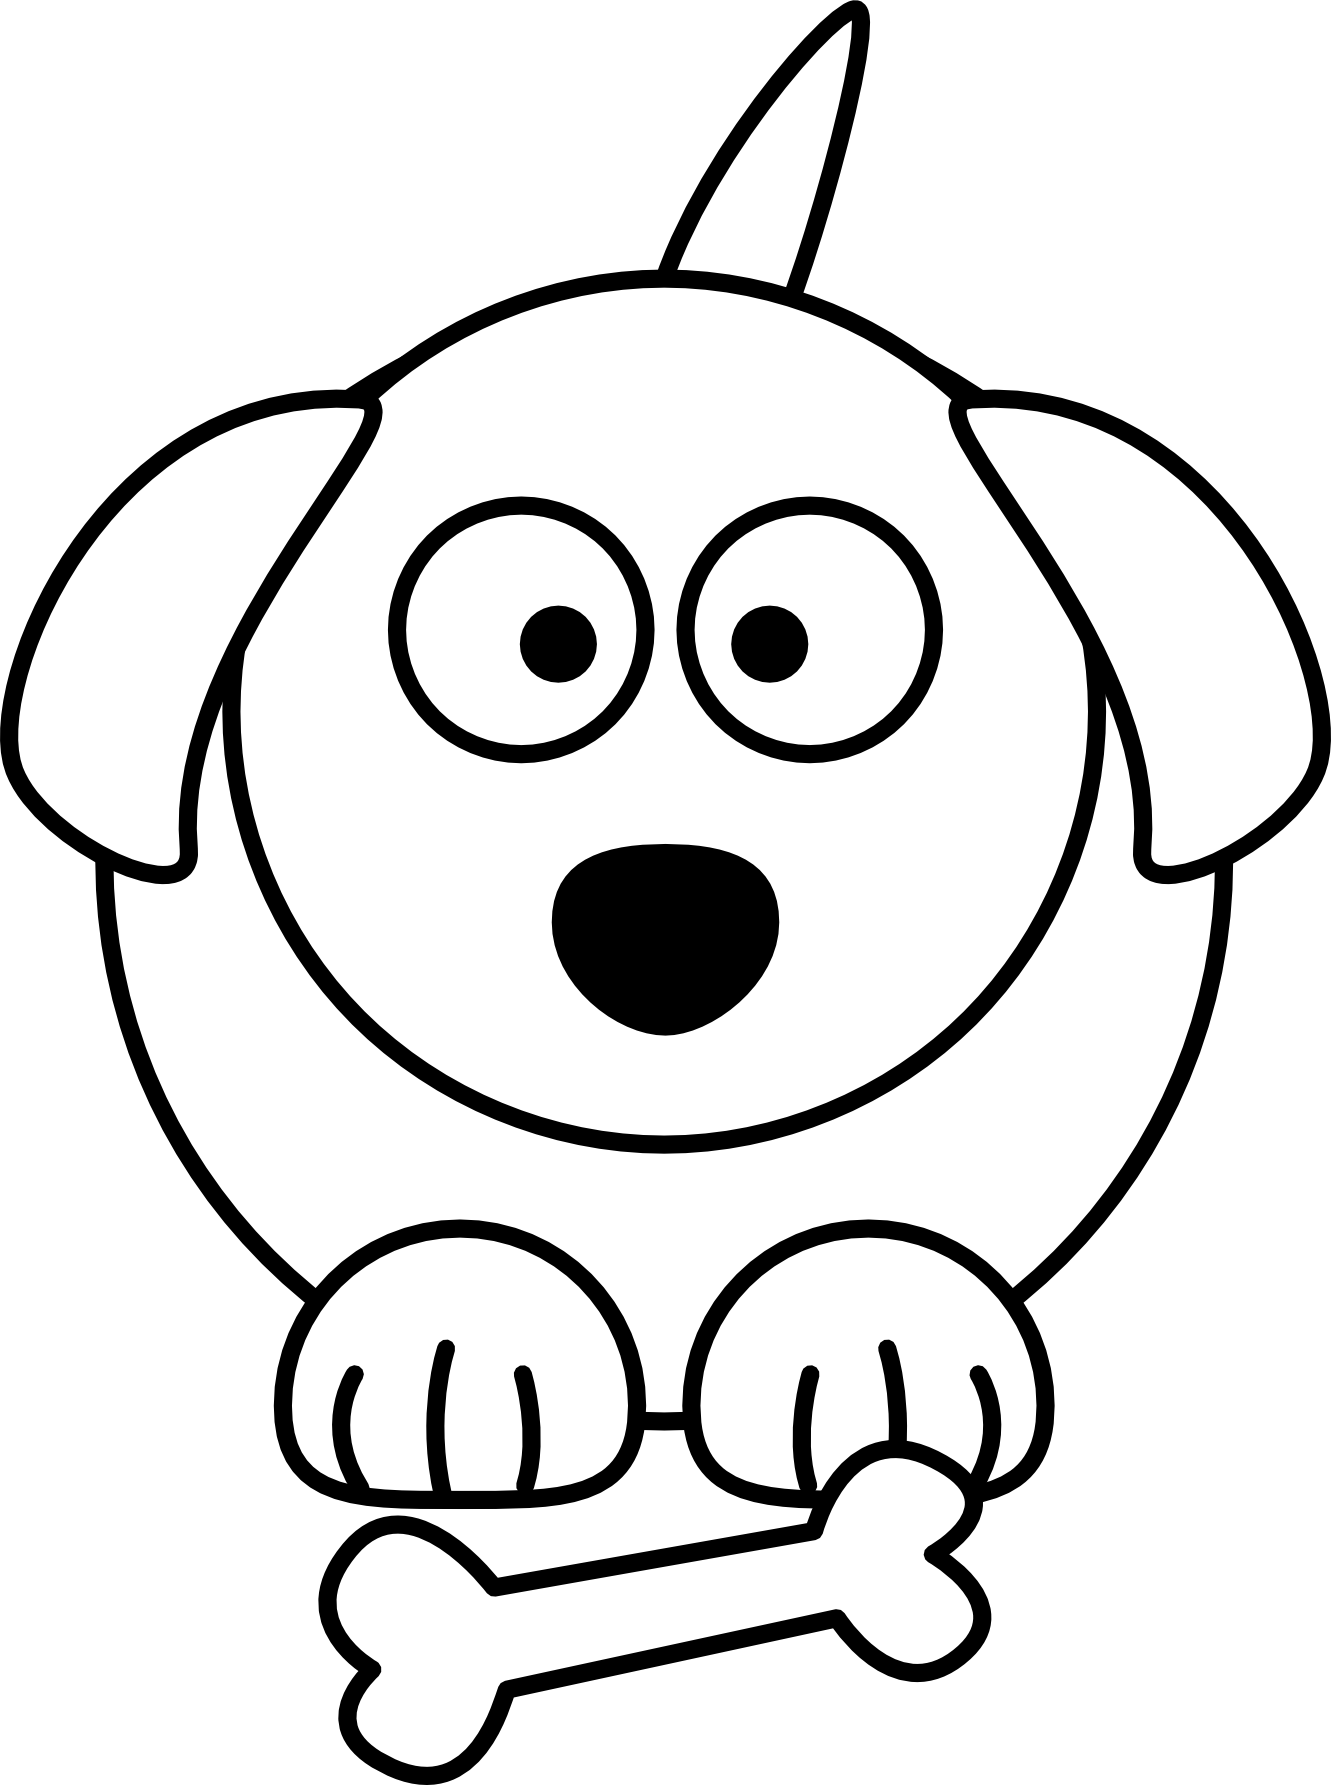 Easy to draw clipart dog png freeuse library Dog Line Drawing Clipart Best Lemmling Cartoon Black White Art ... png freeuse library